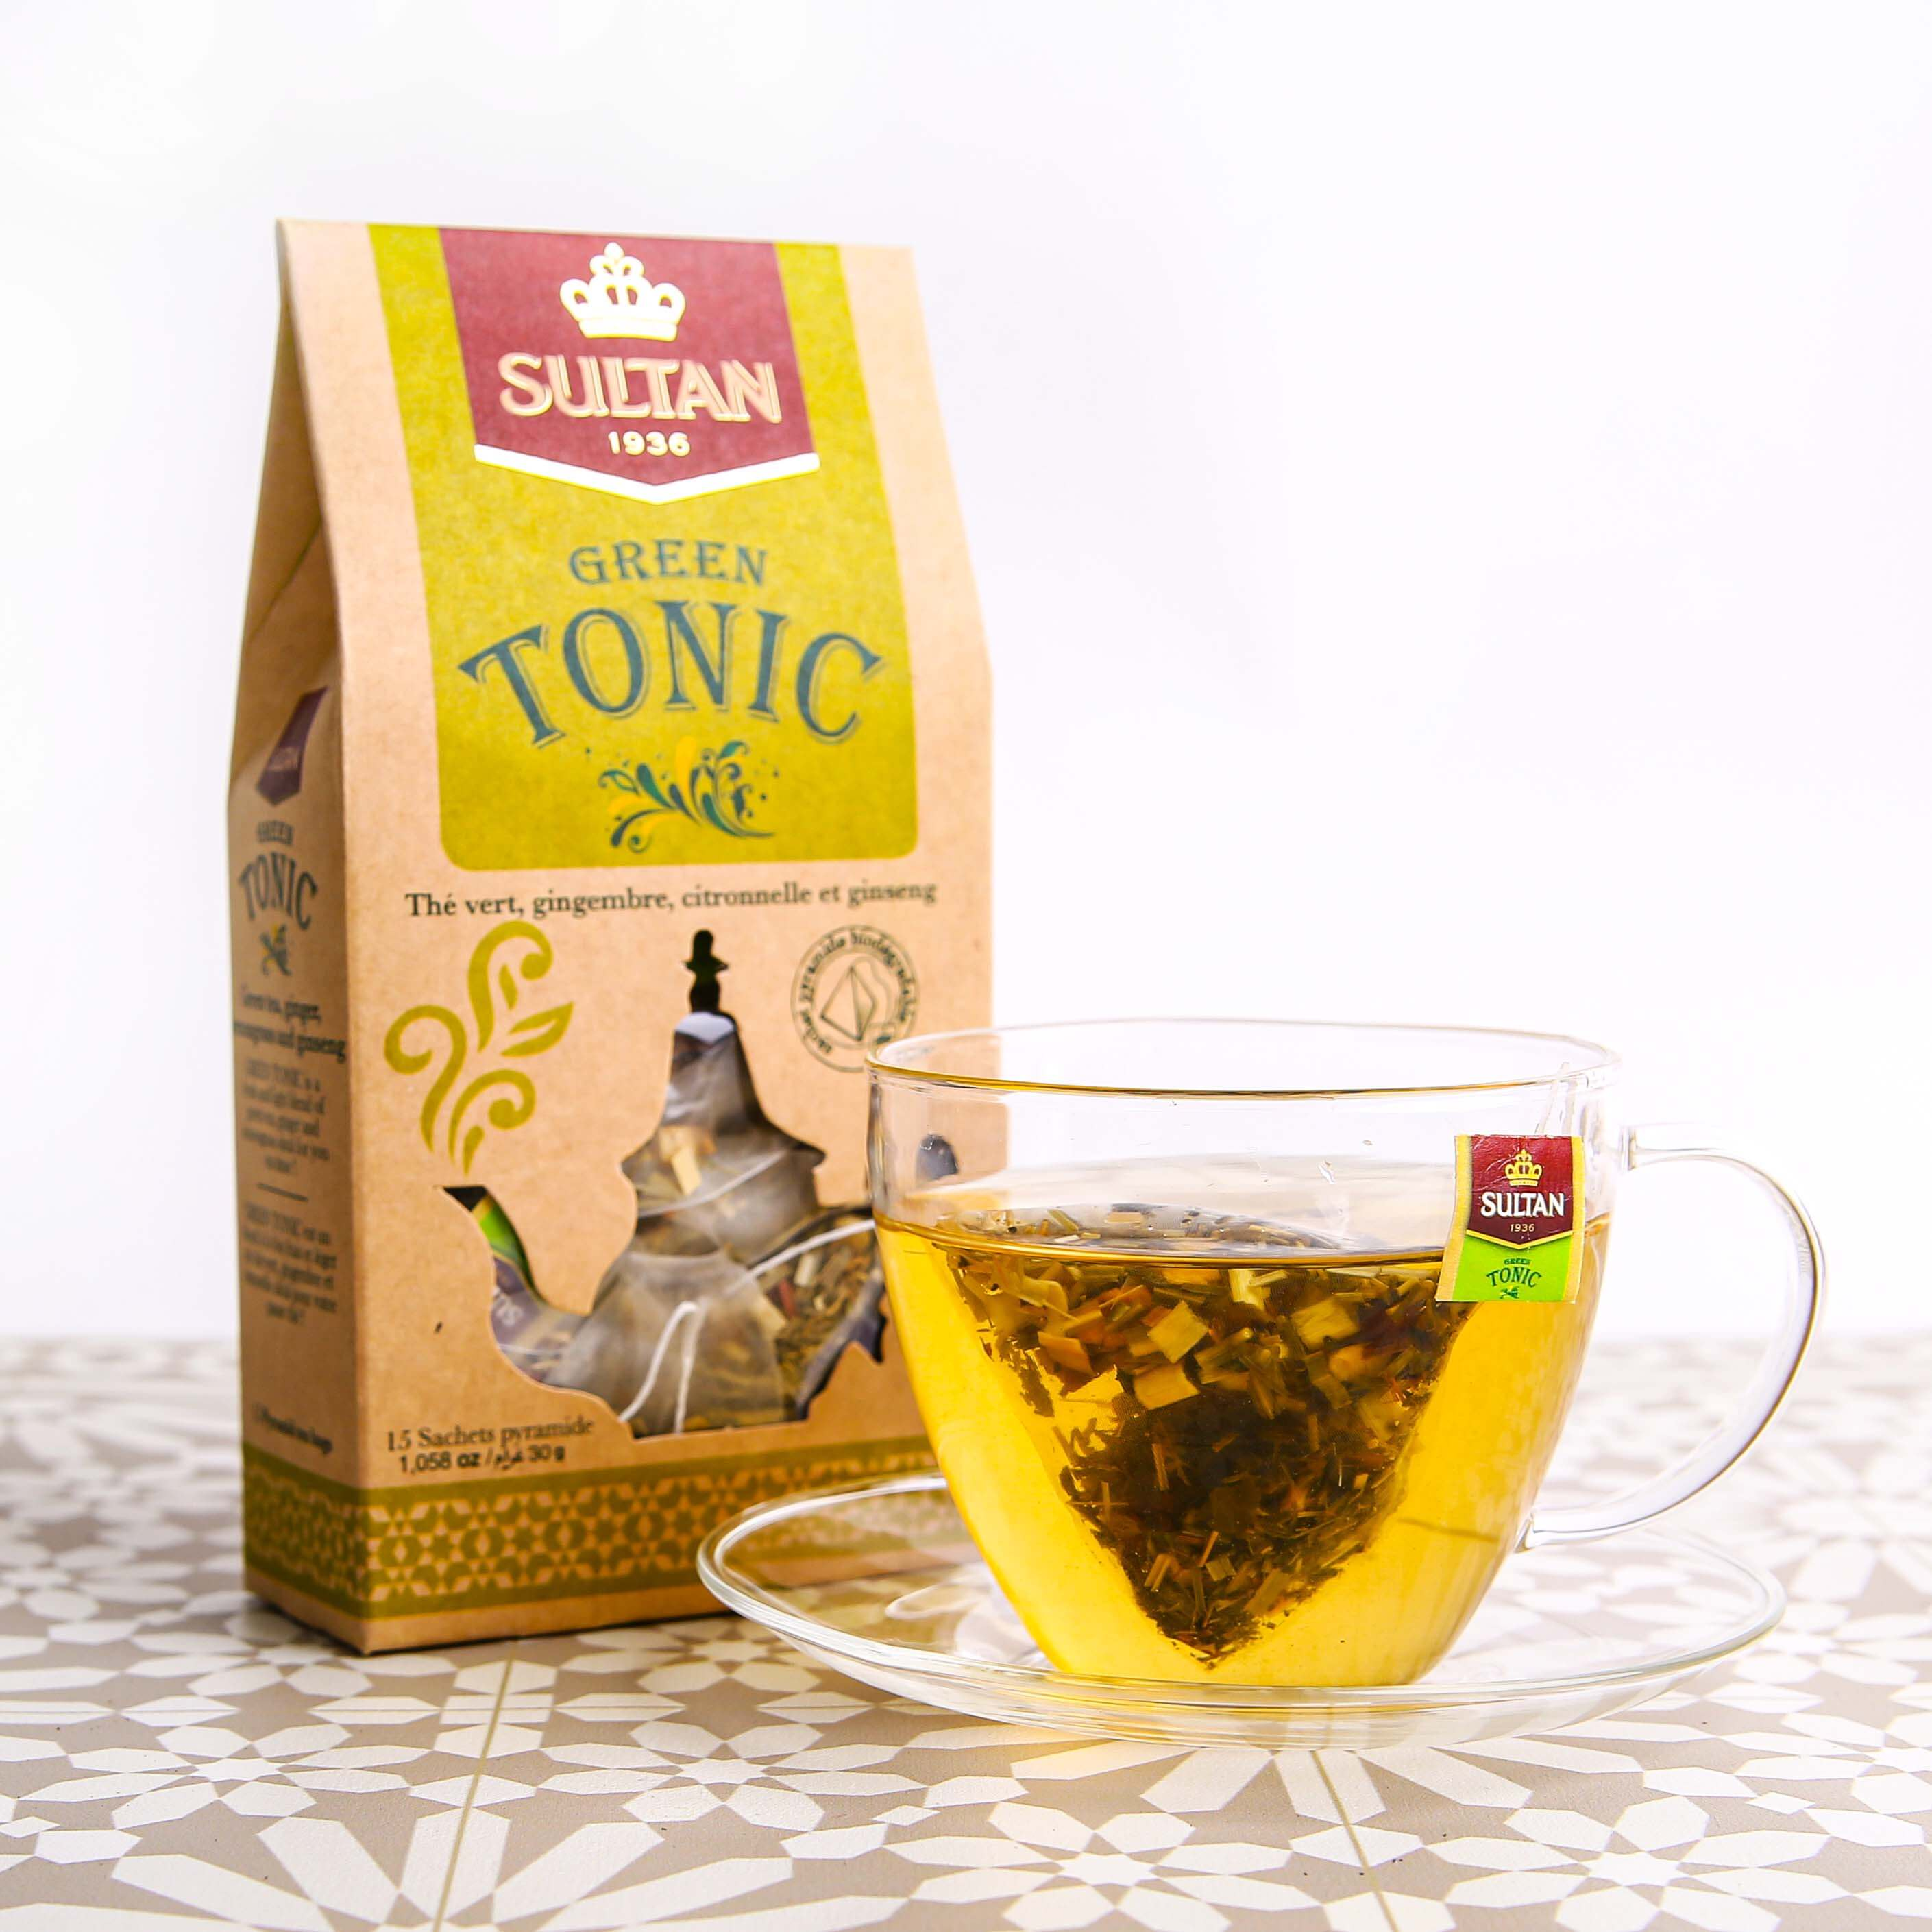 Green Tonic Ginger, Lemongrass and Ginseng Green Tea - 15 Pyramid Tea Bags